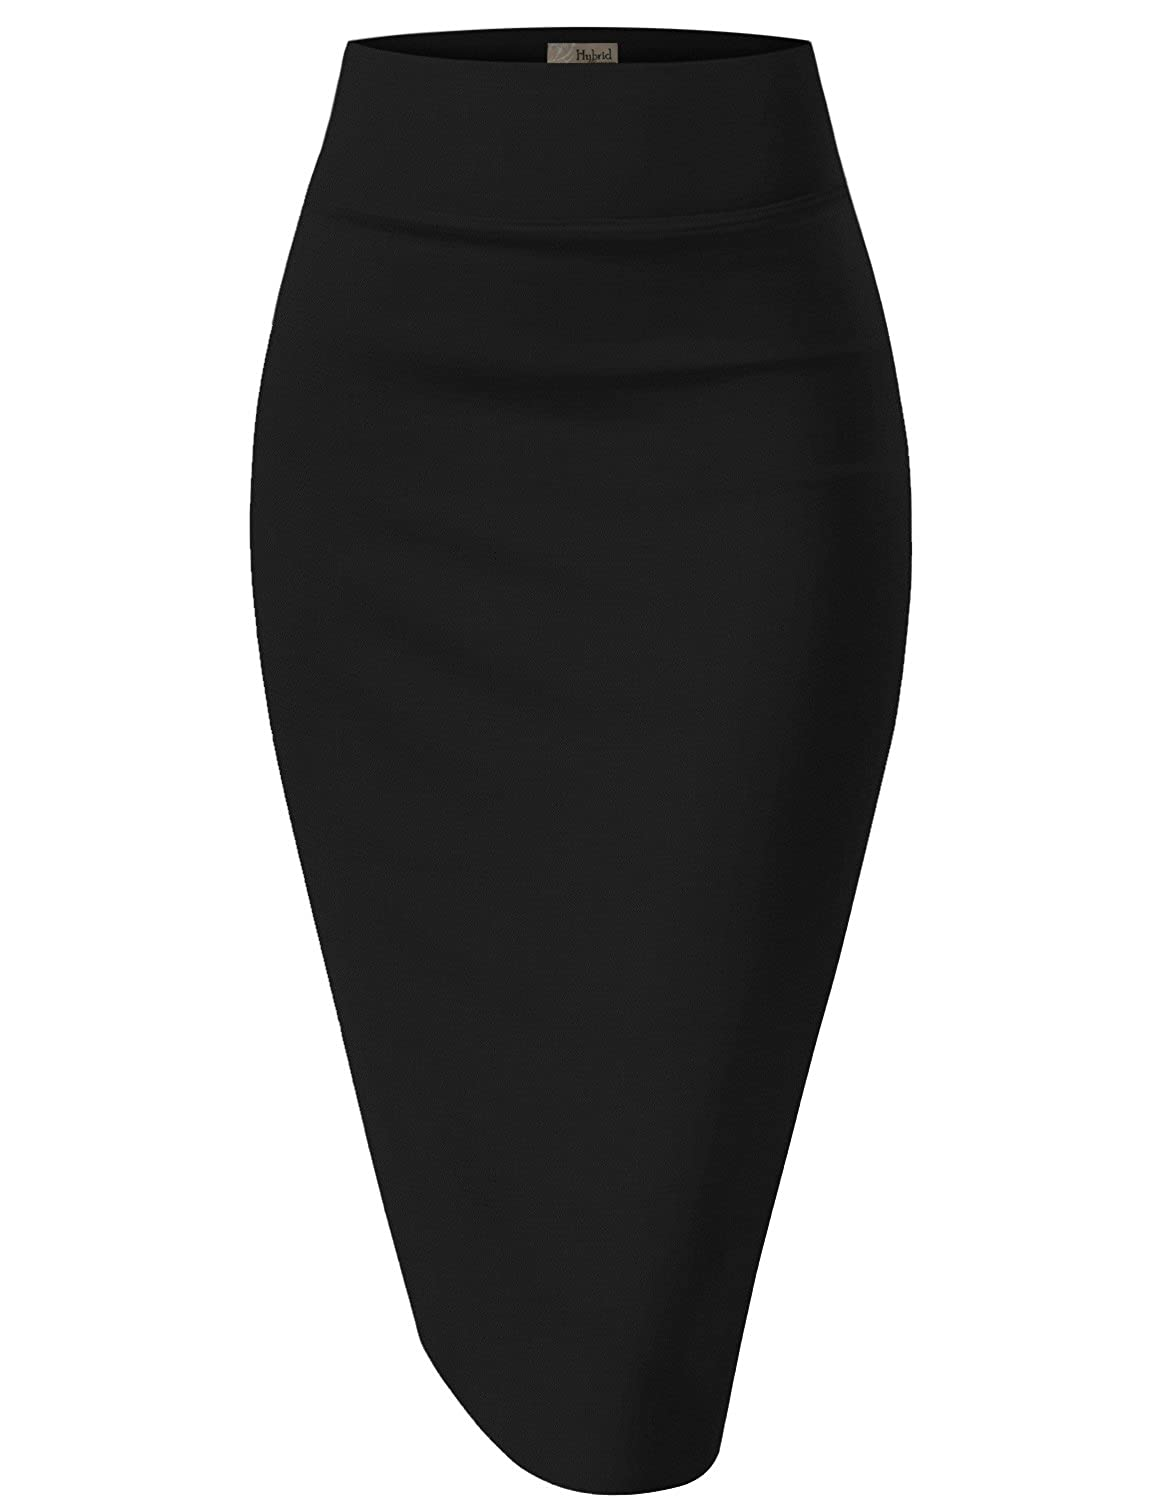 HyBrid & Company H&C Women's Elastic Waist Stretchy Office Pencil Skirt Made In USA